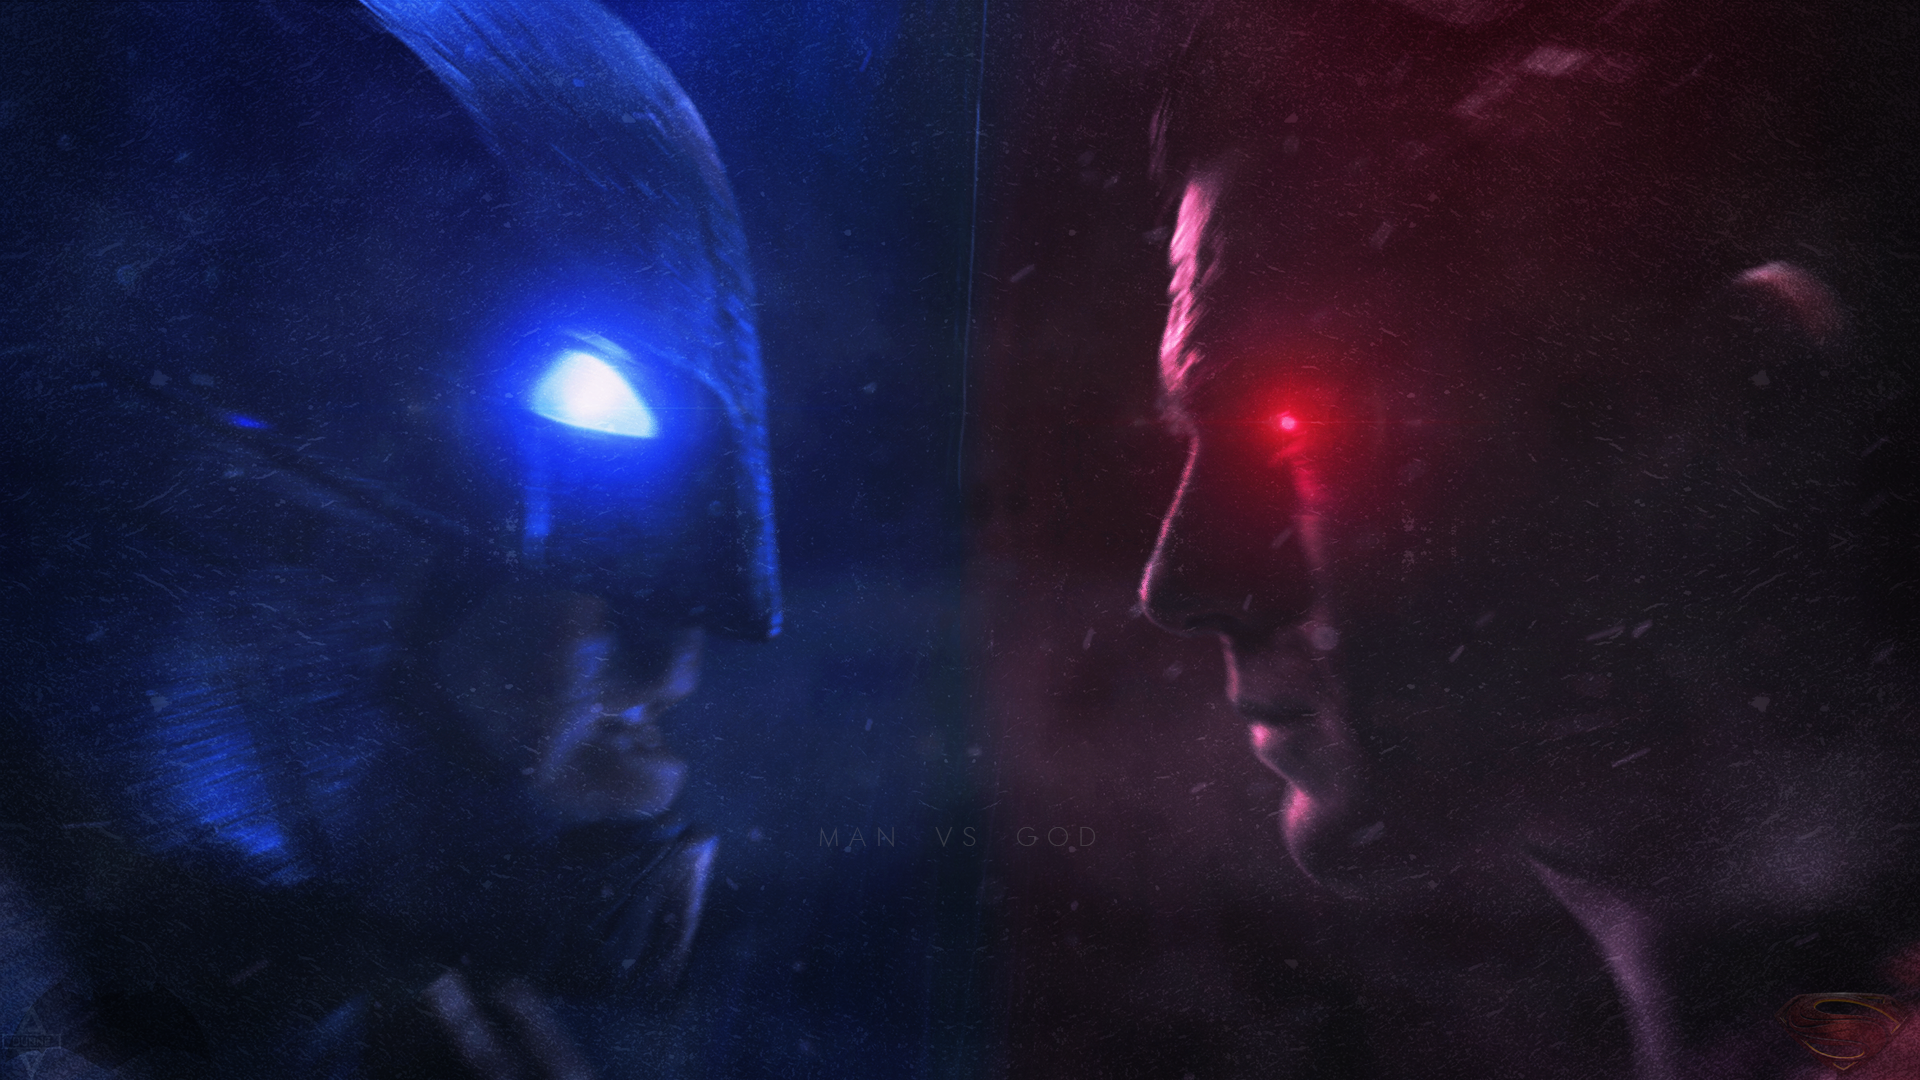 Batman v Superman Wallpaper. by LastSurvivorY2J